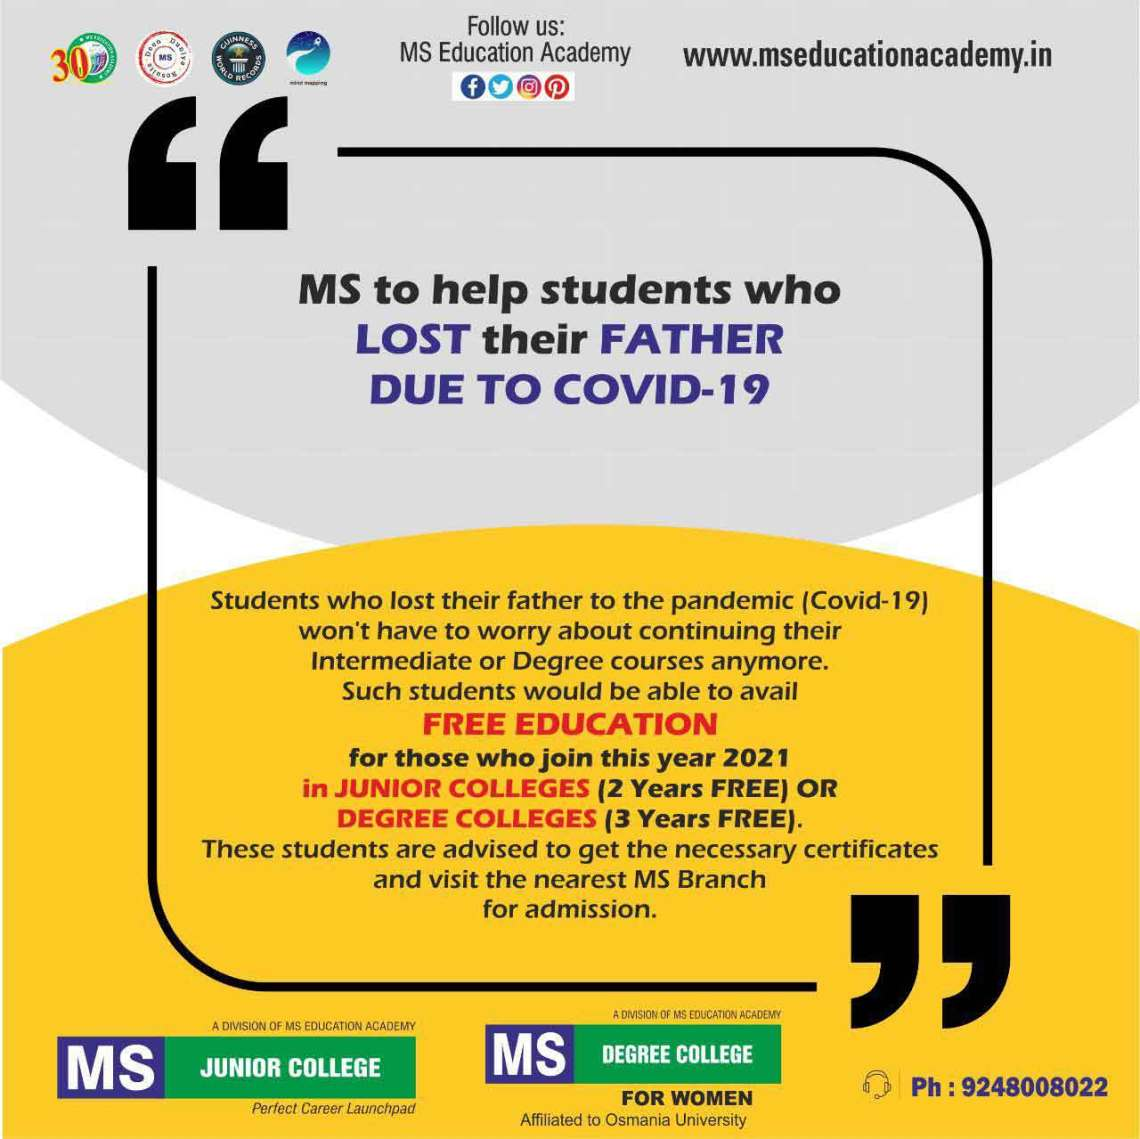 MS providing free education to students lost their father due to COVID-19